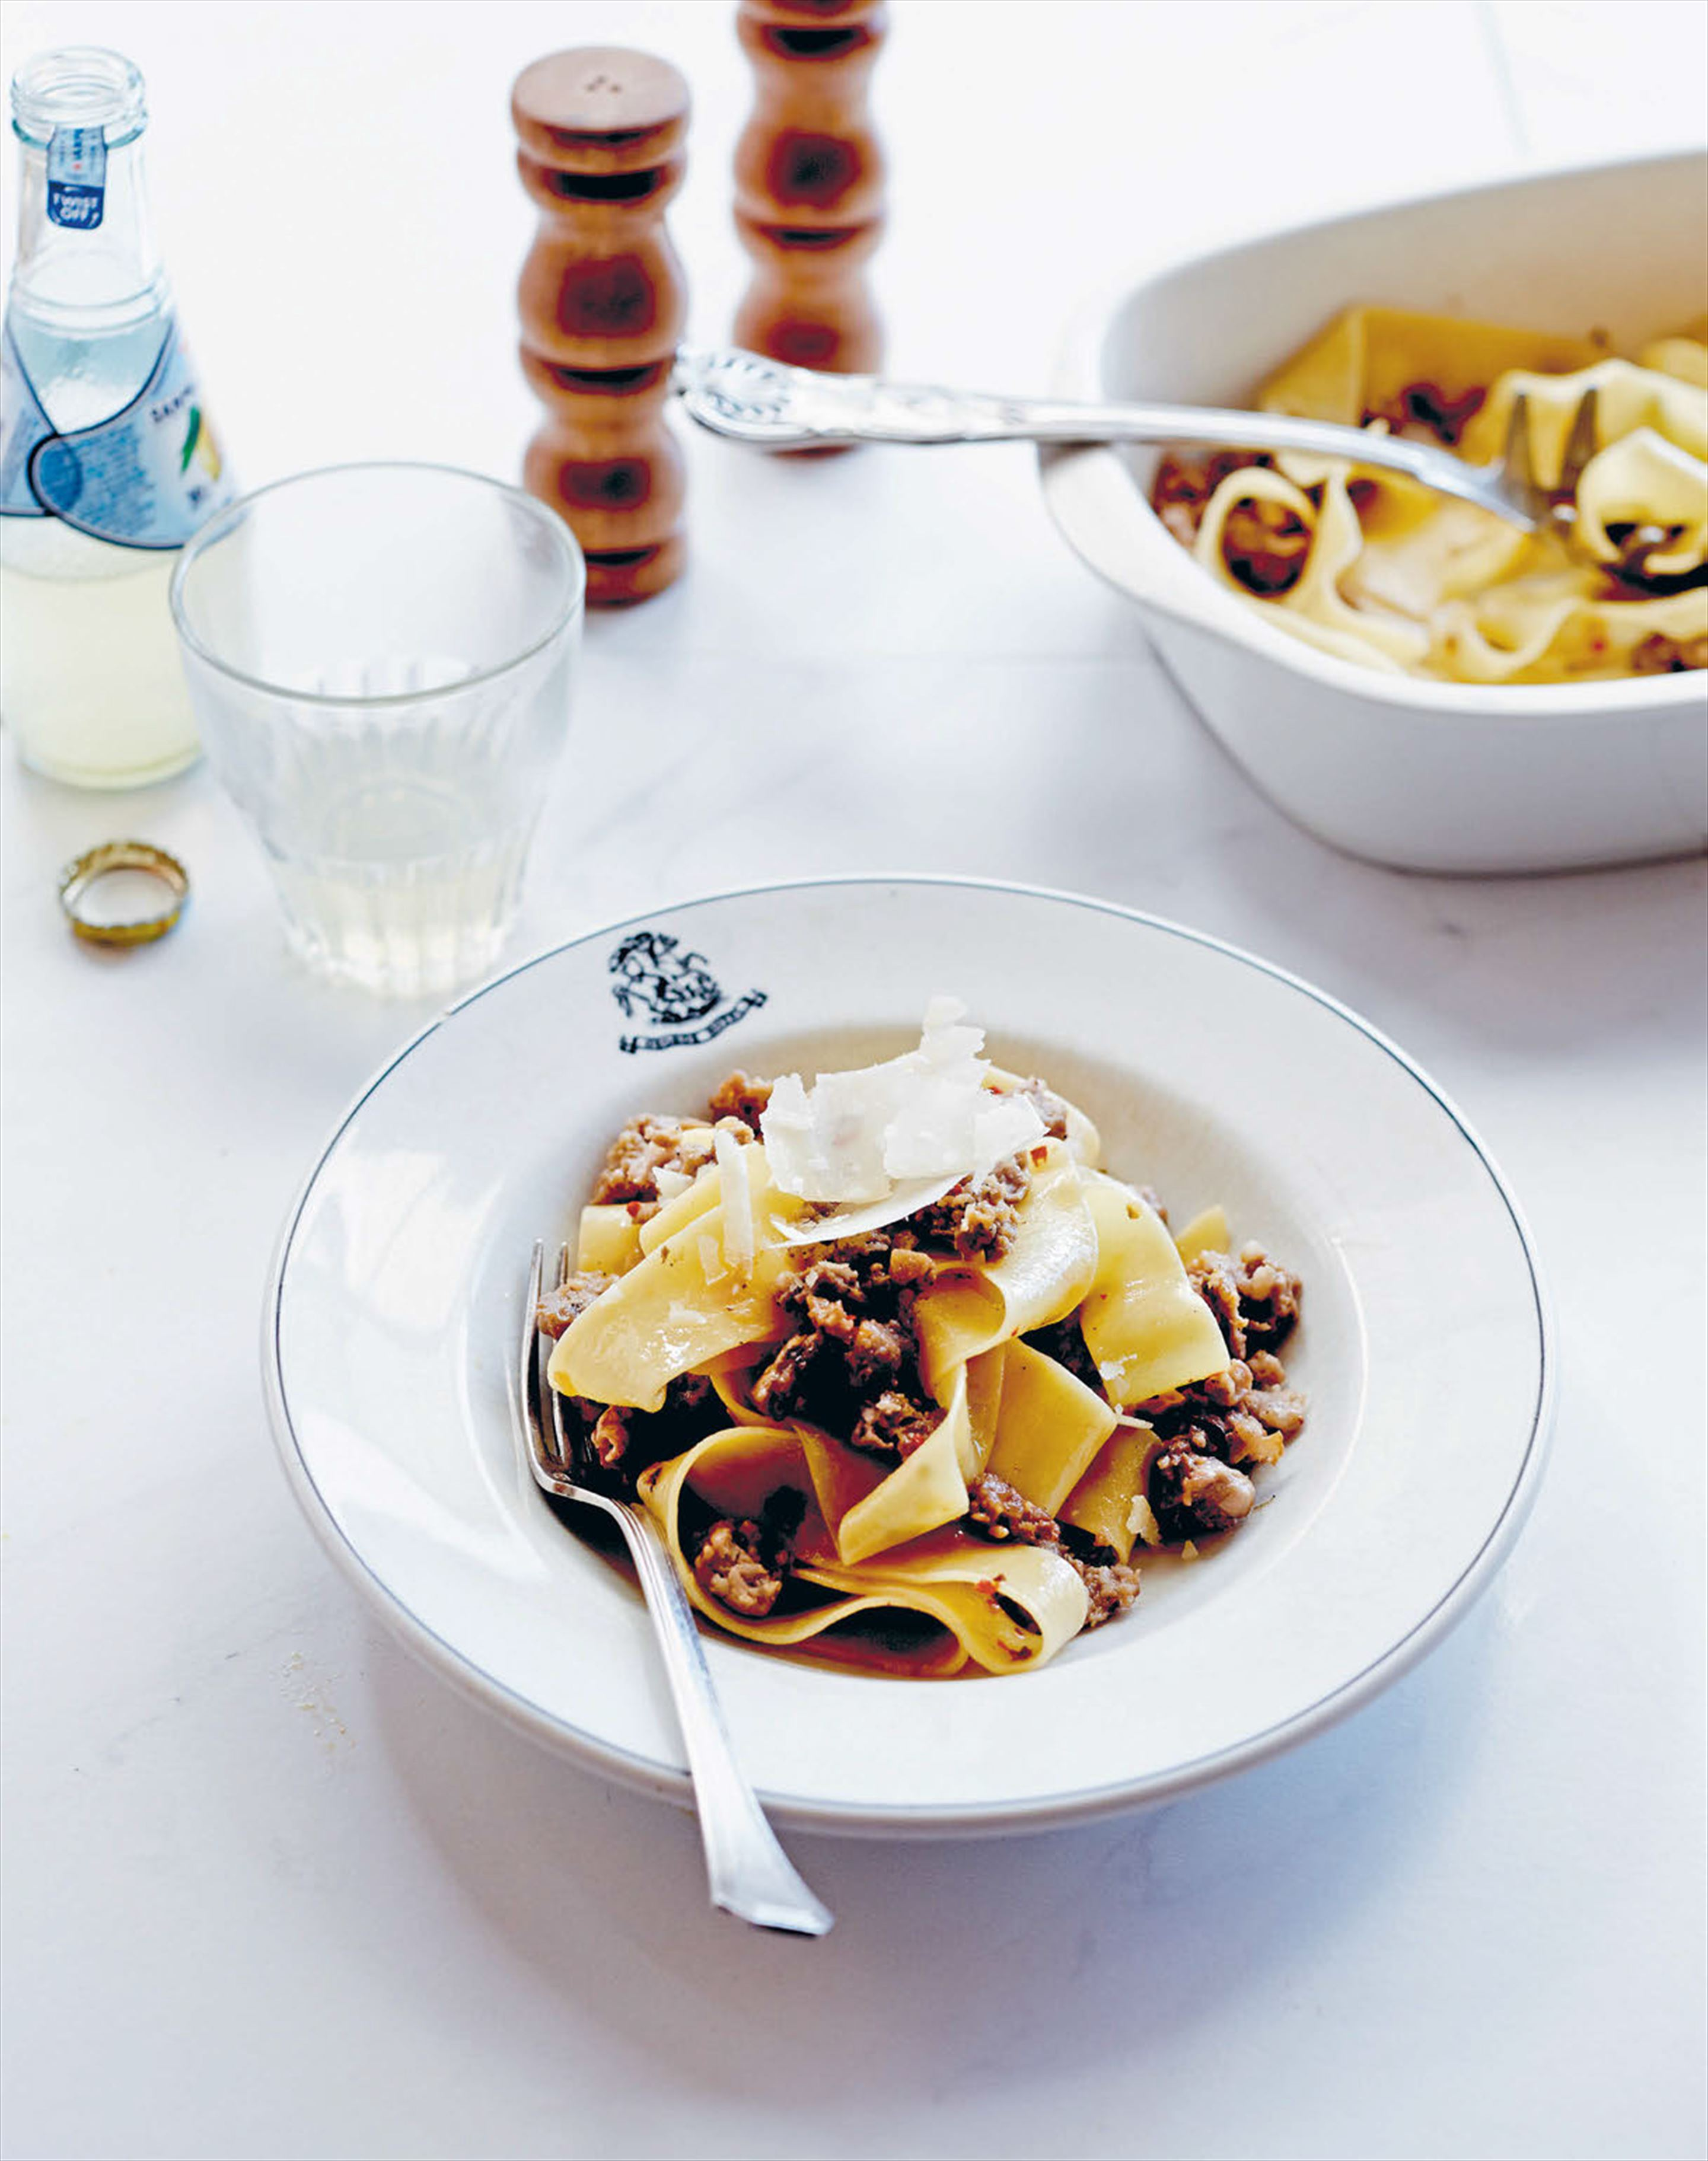 Sausage, porcini and fennel seed ragu pappardelle